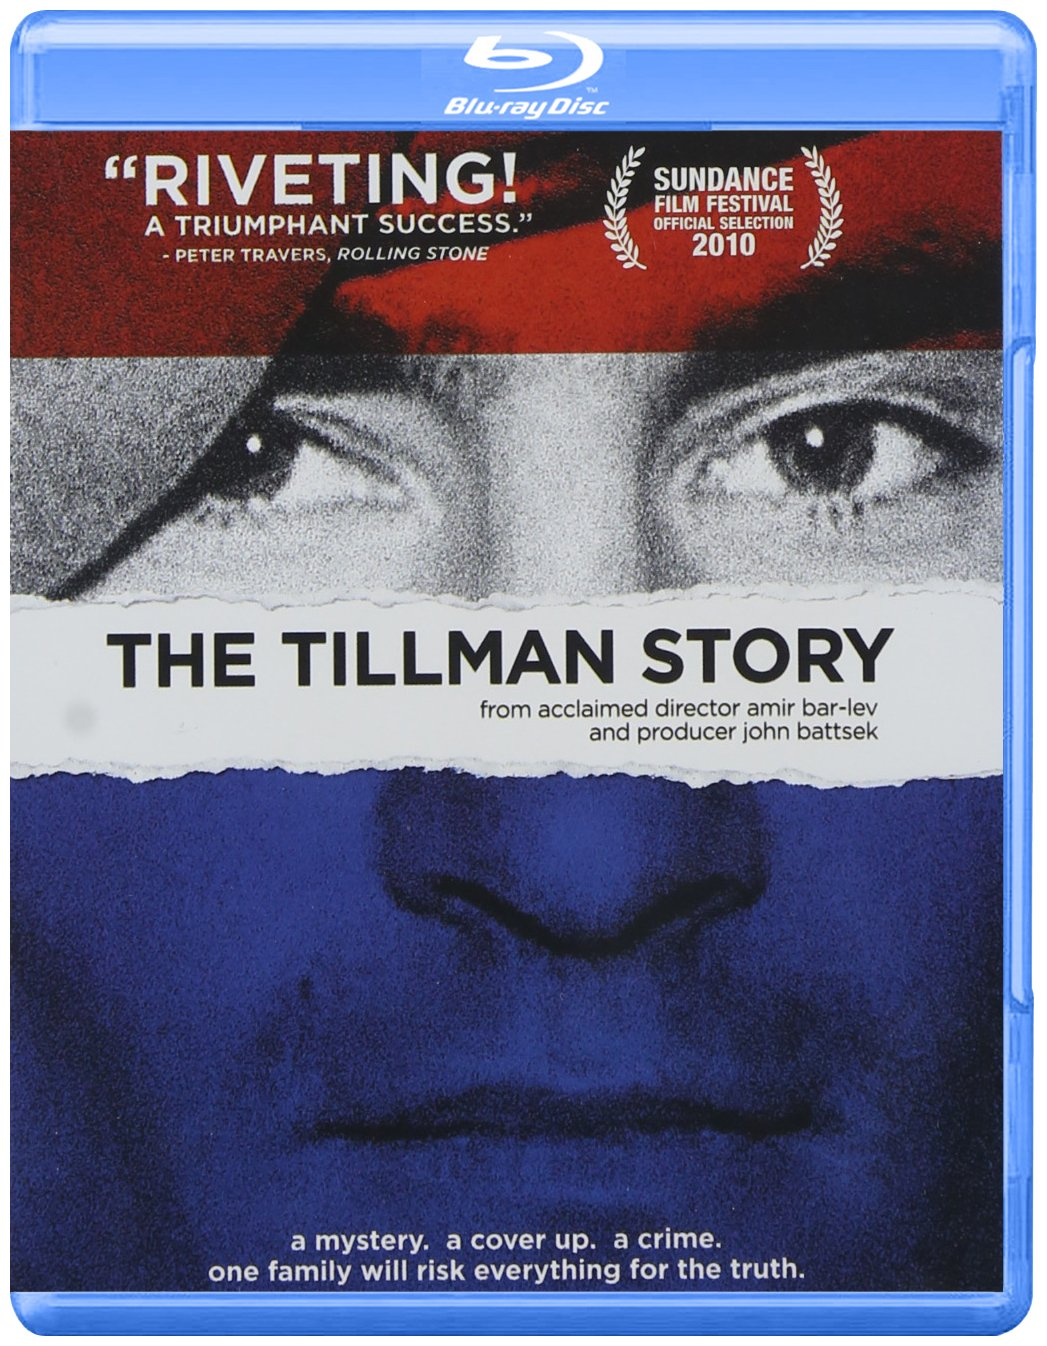 Movies based on the Afghanistan war - The Tillman Story